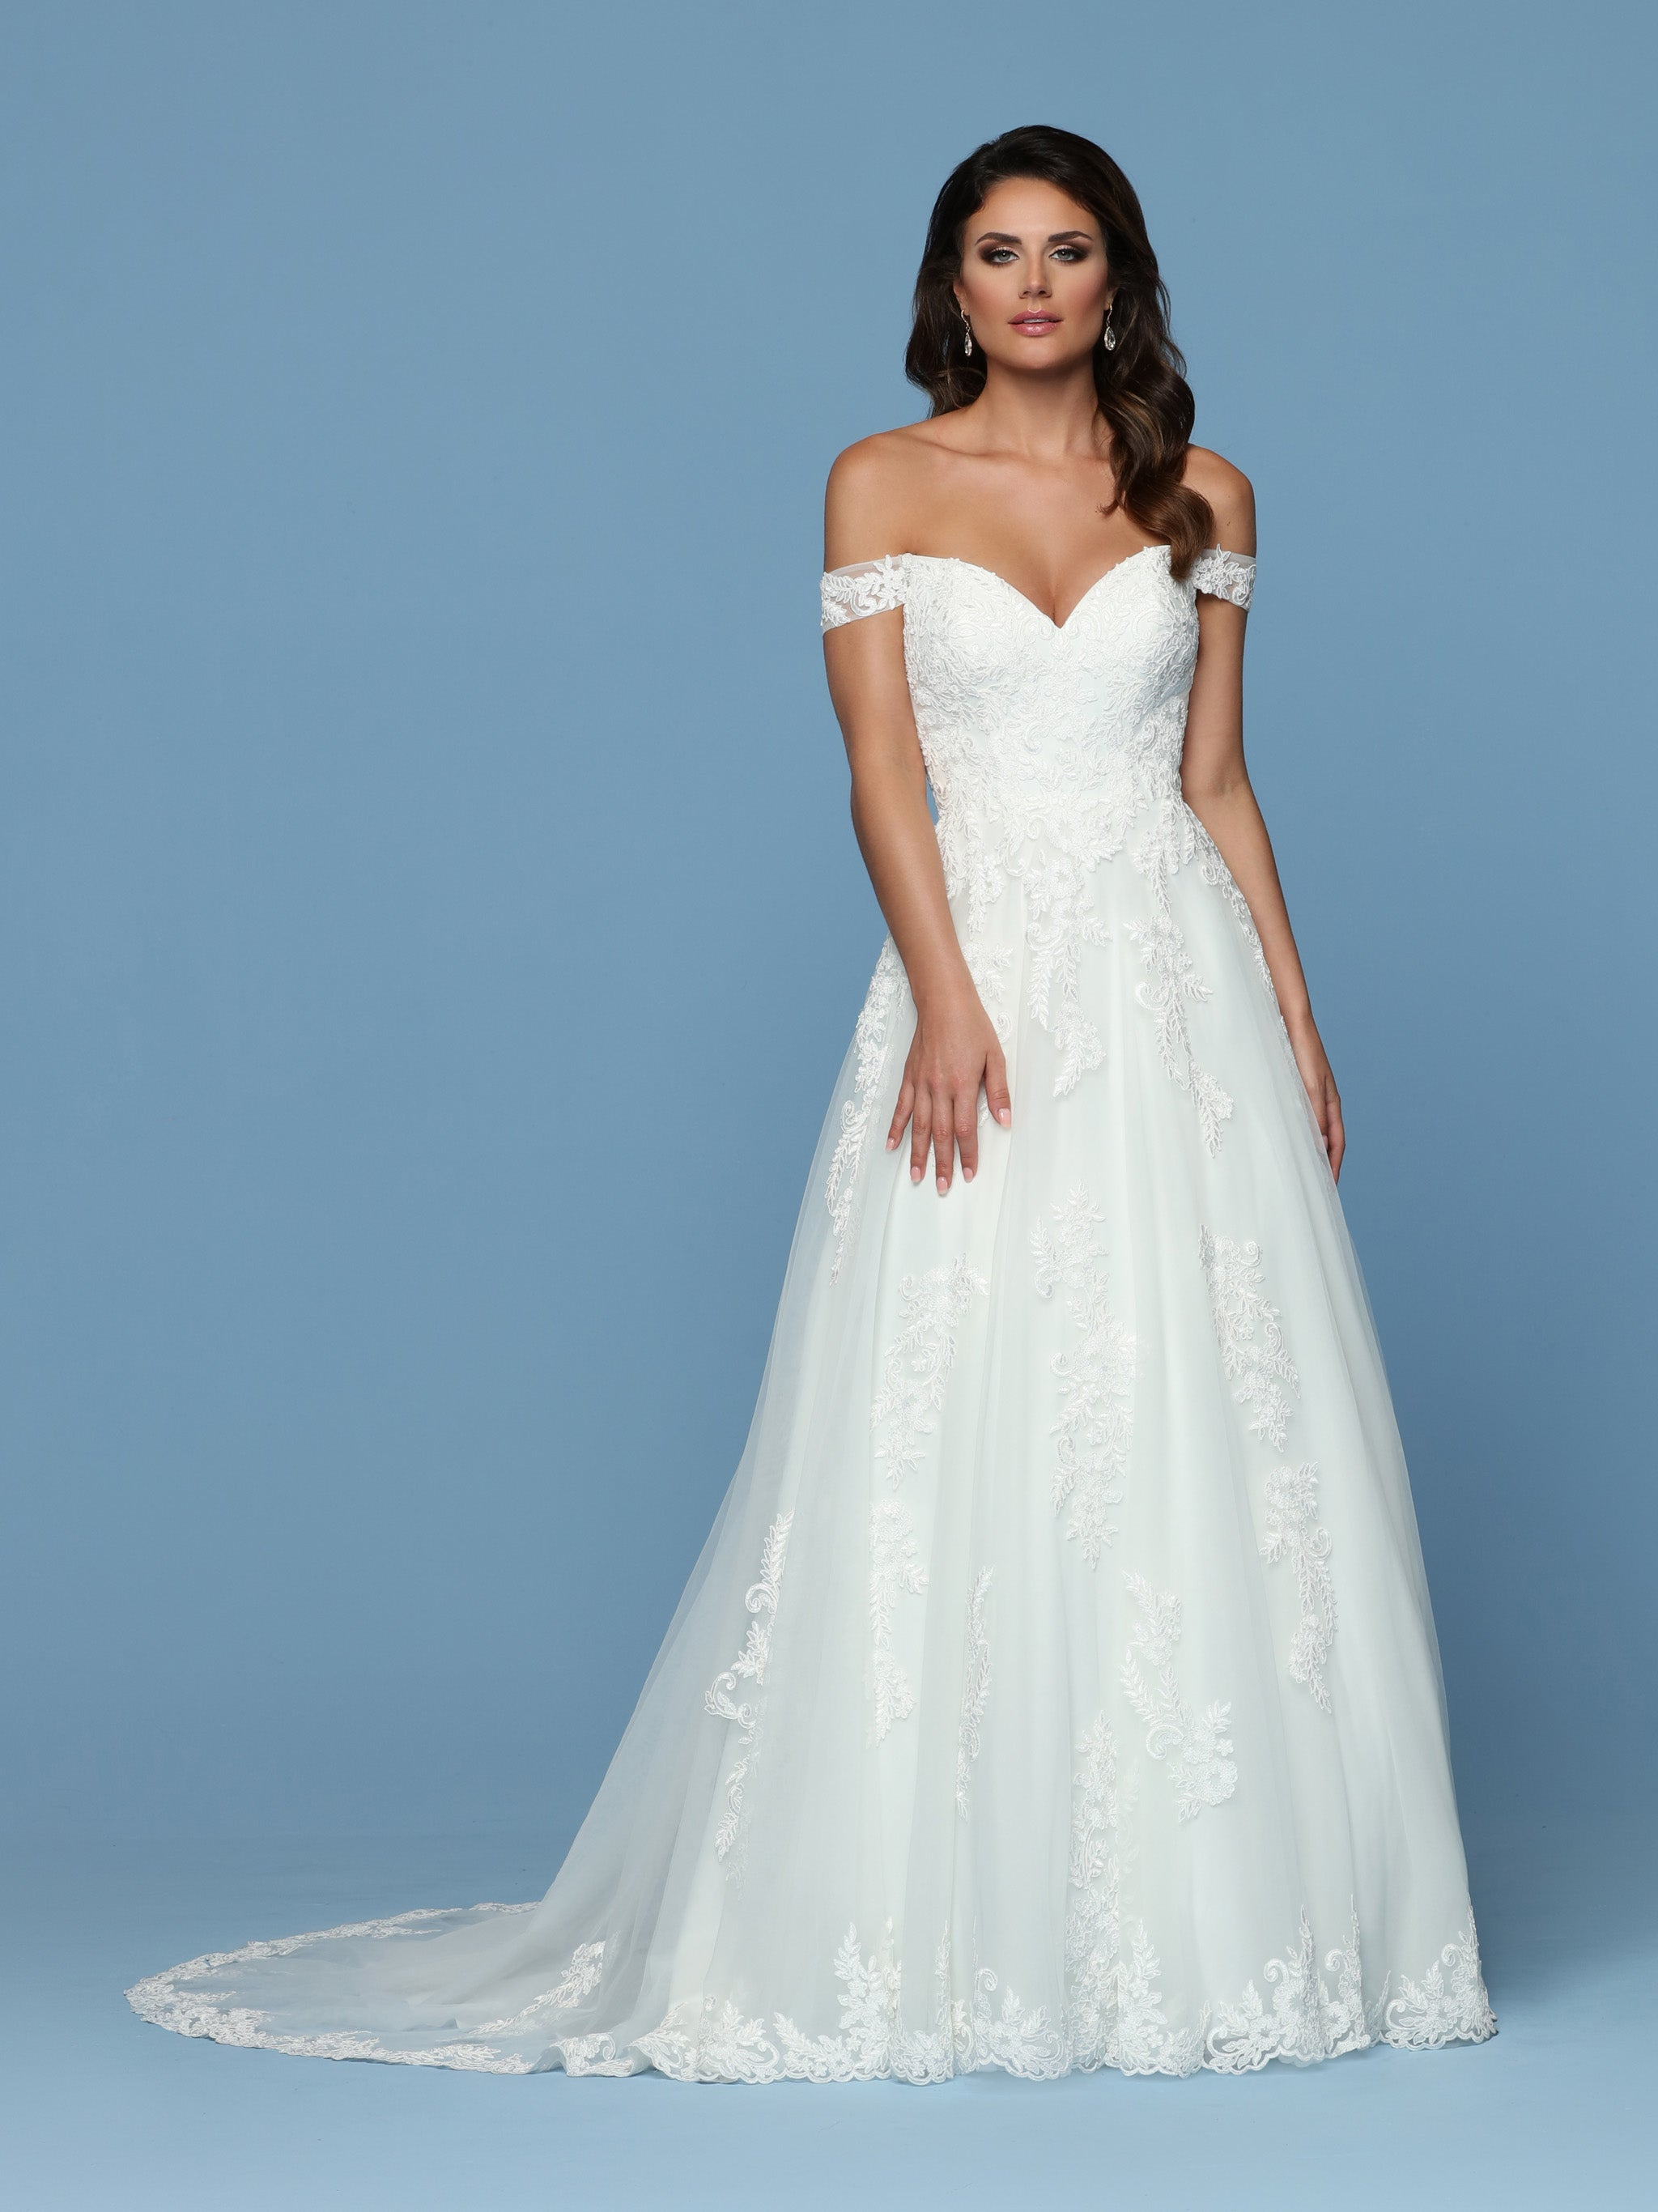 Off the Shoulder Wedding Dresses & Gowns for 2020